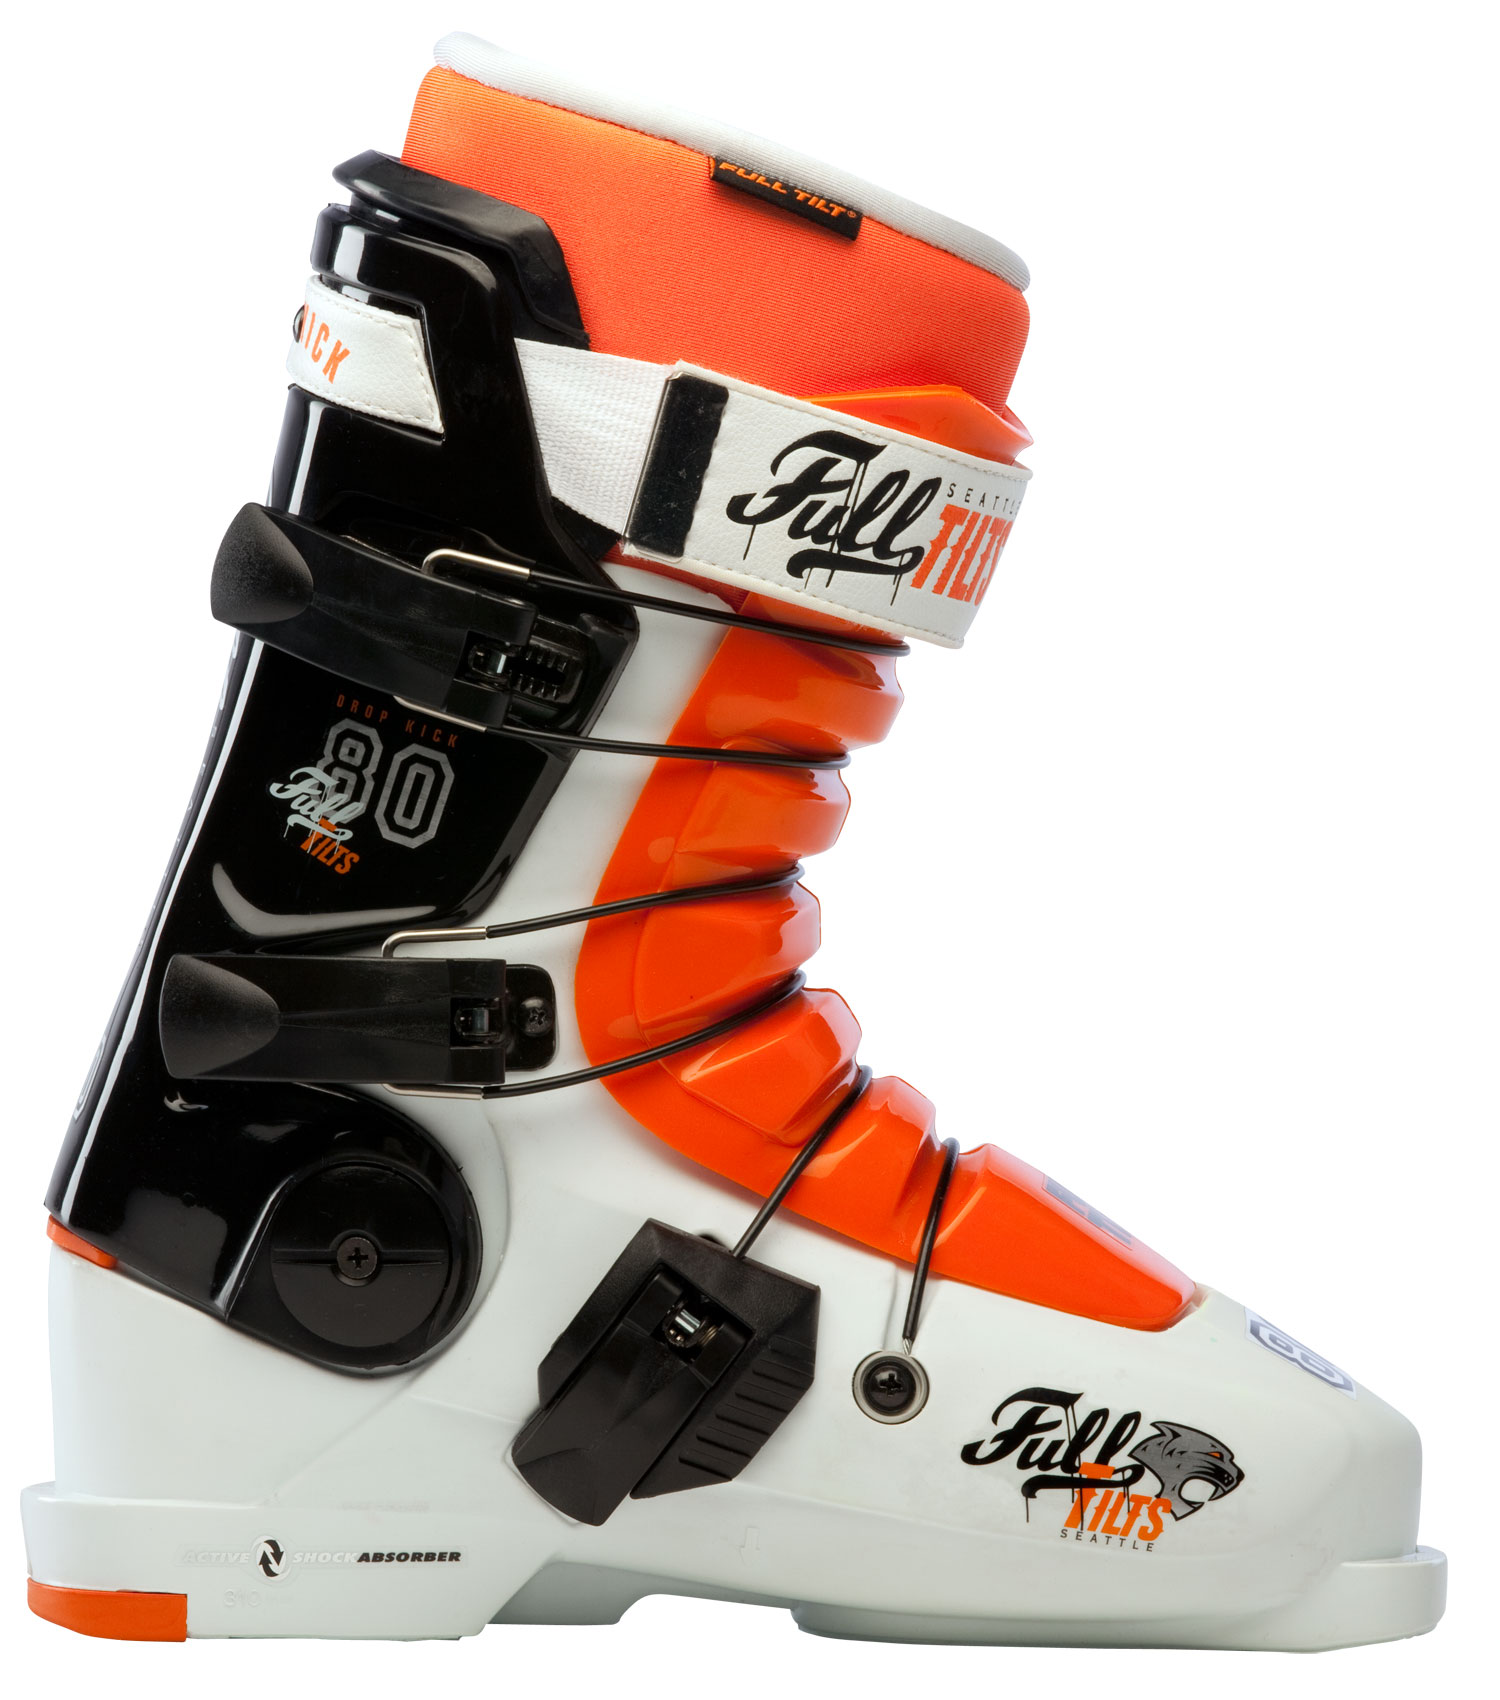 "Ski Key Features of the Full Tilt Drop Kick Ski Boots:  Shell: FTO Original  Last Width: 99mm  Tongue (10 = Stiffest Flex : Interchangeable   6 Flex / 7 Ribs""=  Weight g (sizes M 27, W 25 : 1825  Foot Board: Active  Sole: Replaceable Rubber  Small Heel  Buckles: 3 Nylon  Micro Ratchet  Closure System: 3 Cables  Forward Cant Adjustment:  3 & 7.6mm Wedges  Lateral Cant Adjustment: 12mm  Toe / Heal Height: 14.5mm / 32mm  Cuff: Free Hinging  Quickfit Liner Model: PERFORMER  Open Cell Foam: 4mm  Soft Density Intuition Foam: 2mm  Regular Density Intuition Foam: 7mm  High Density Intuition Foam:   Moldable Foam: Intuition   Powerwrap:   Wide Toe: Wide toe - $215.95"